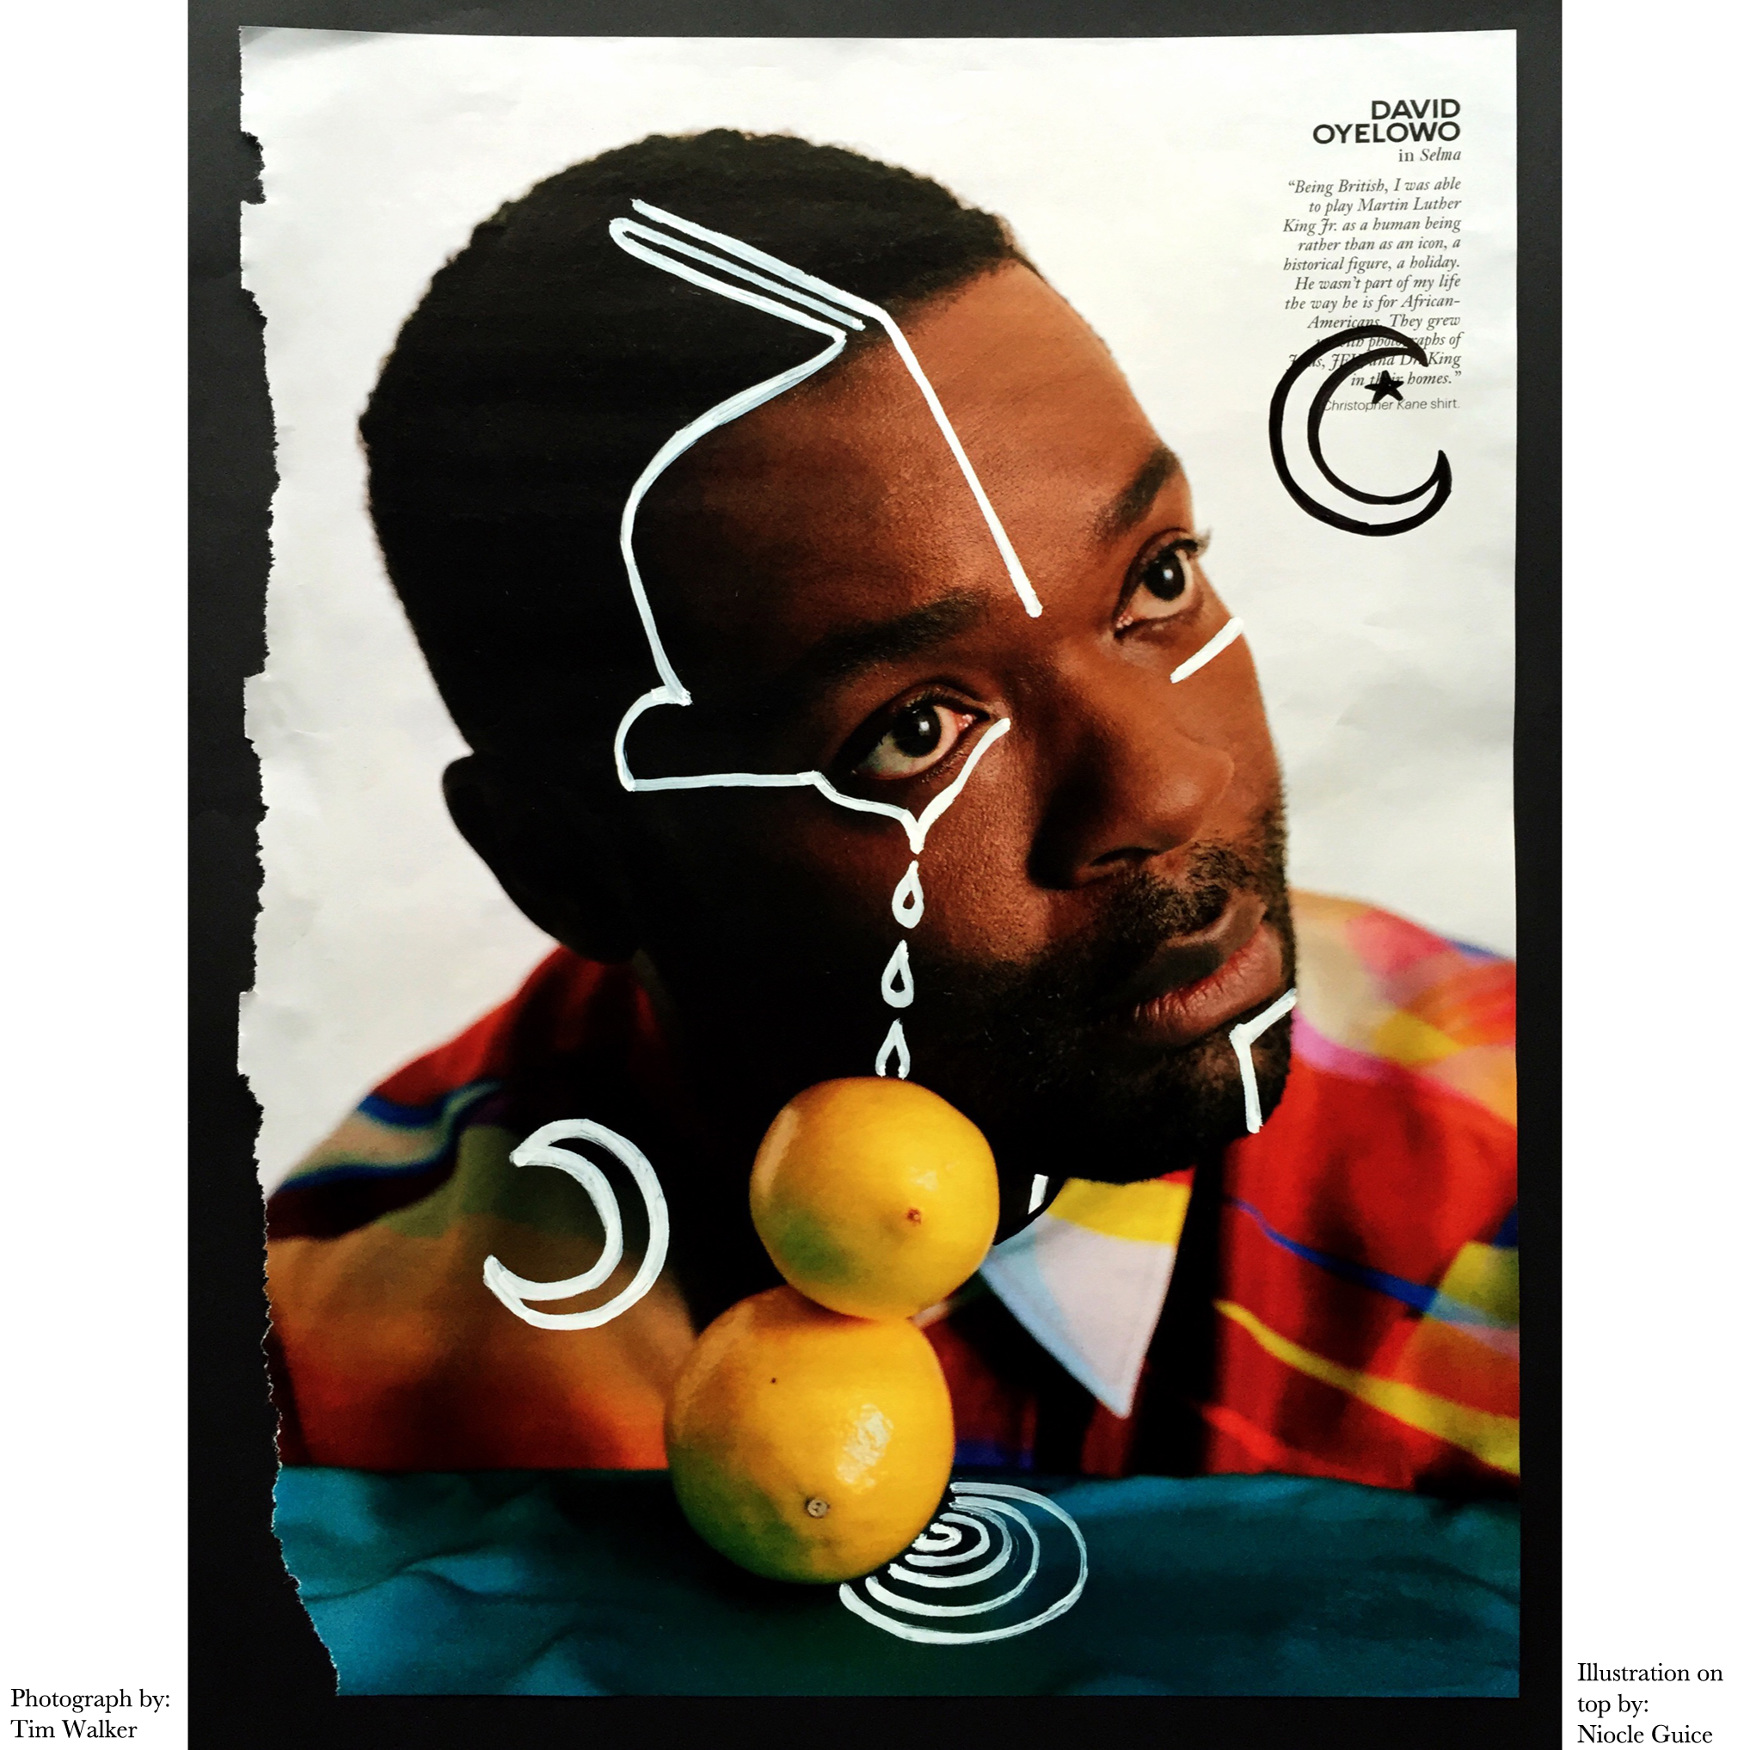 David-Oyelowo-by-Tim-Walker-in-W-Magazine-2015_Illustration-on-top-by-Nicole-Guice.Illograph.-color_1750.jpg